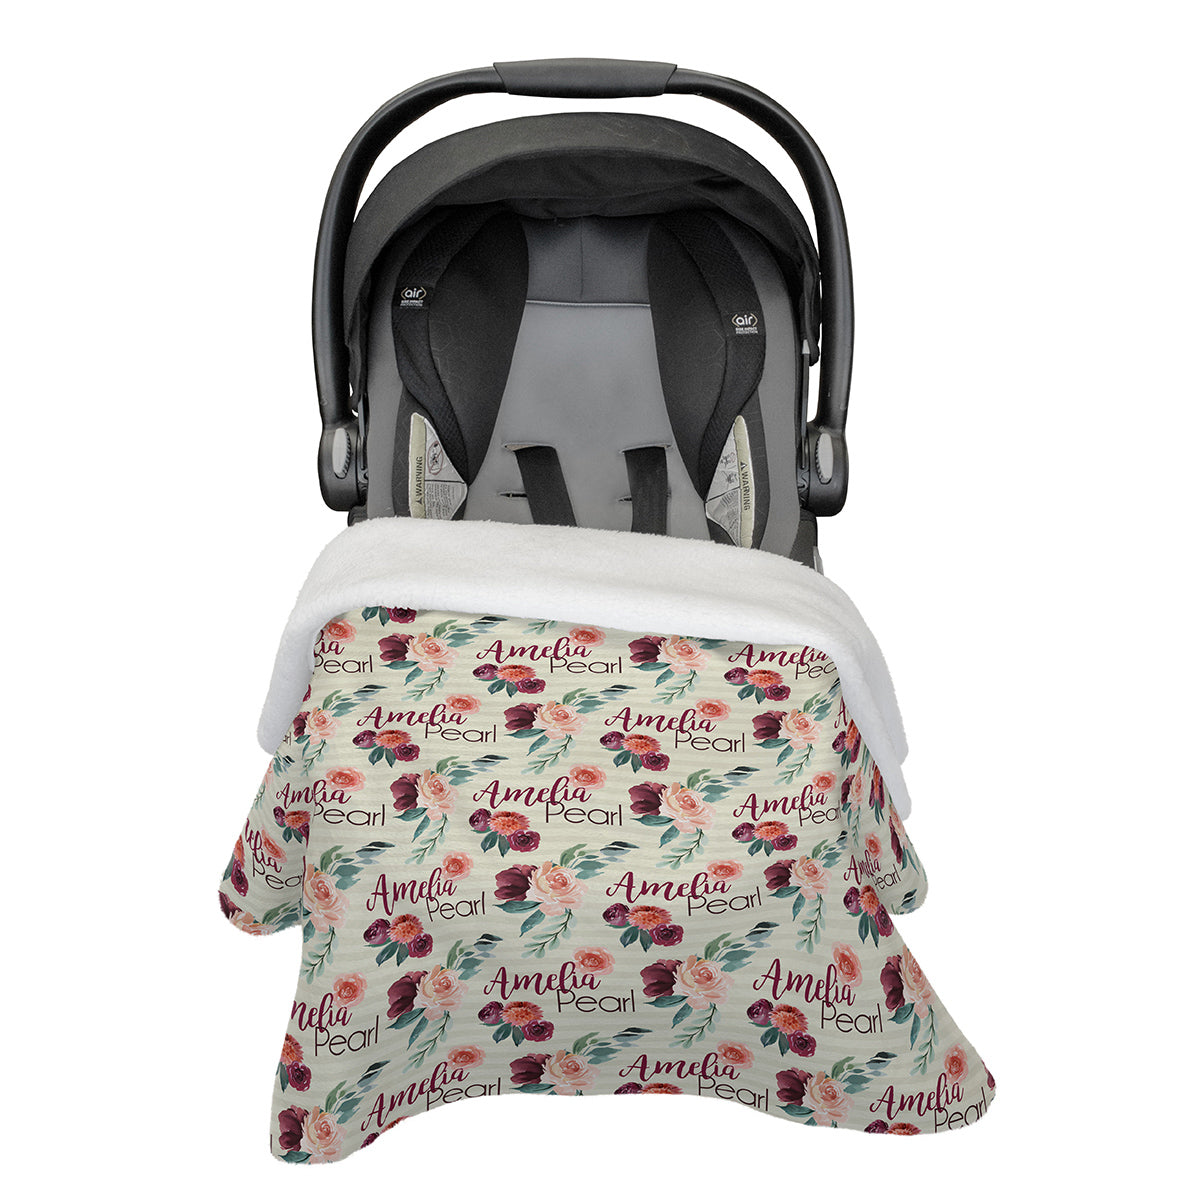 Alice's Autumn Rose | Rose Garden | Car Seat Blanket